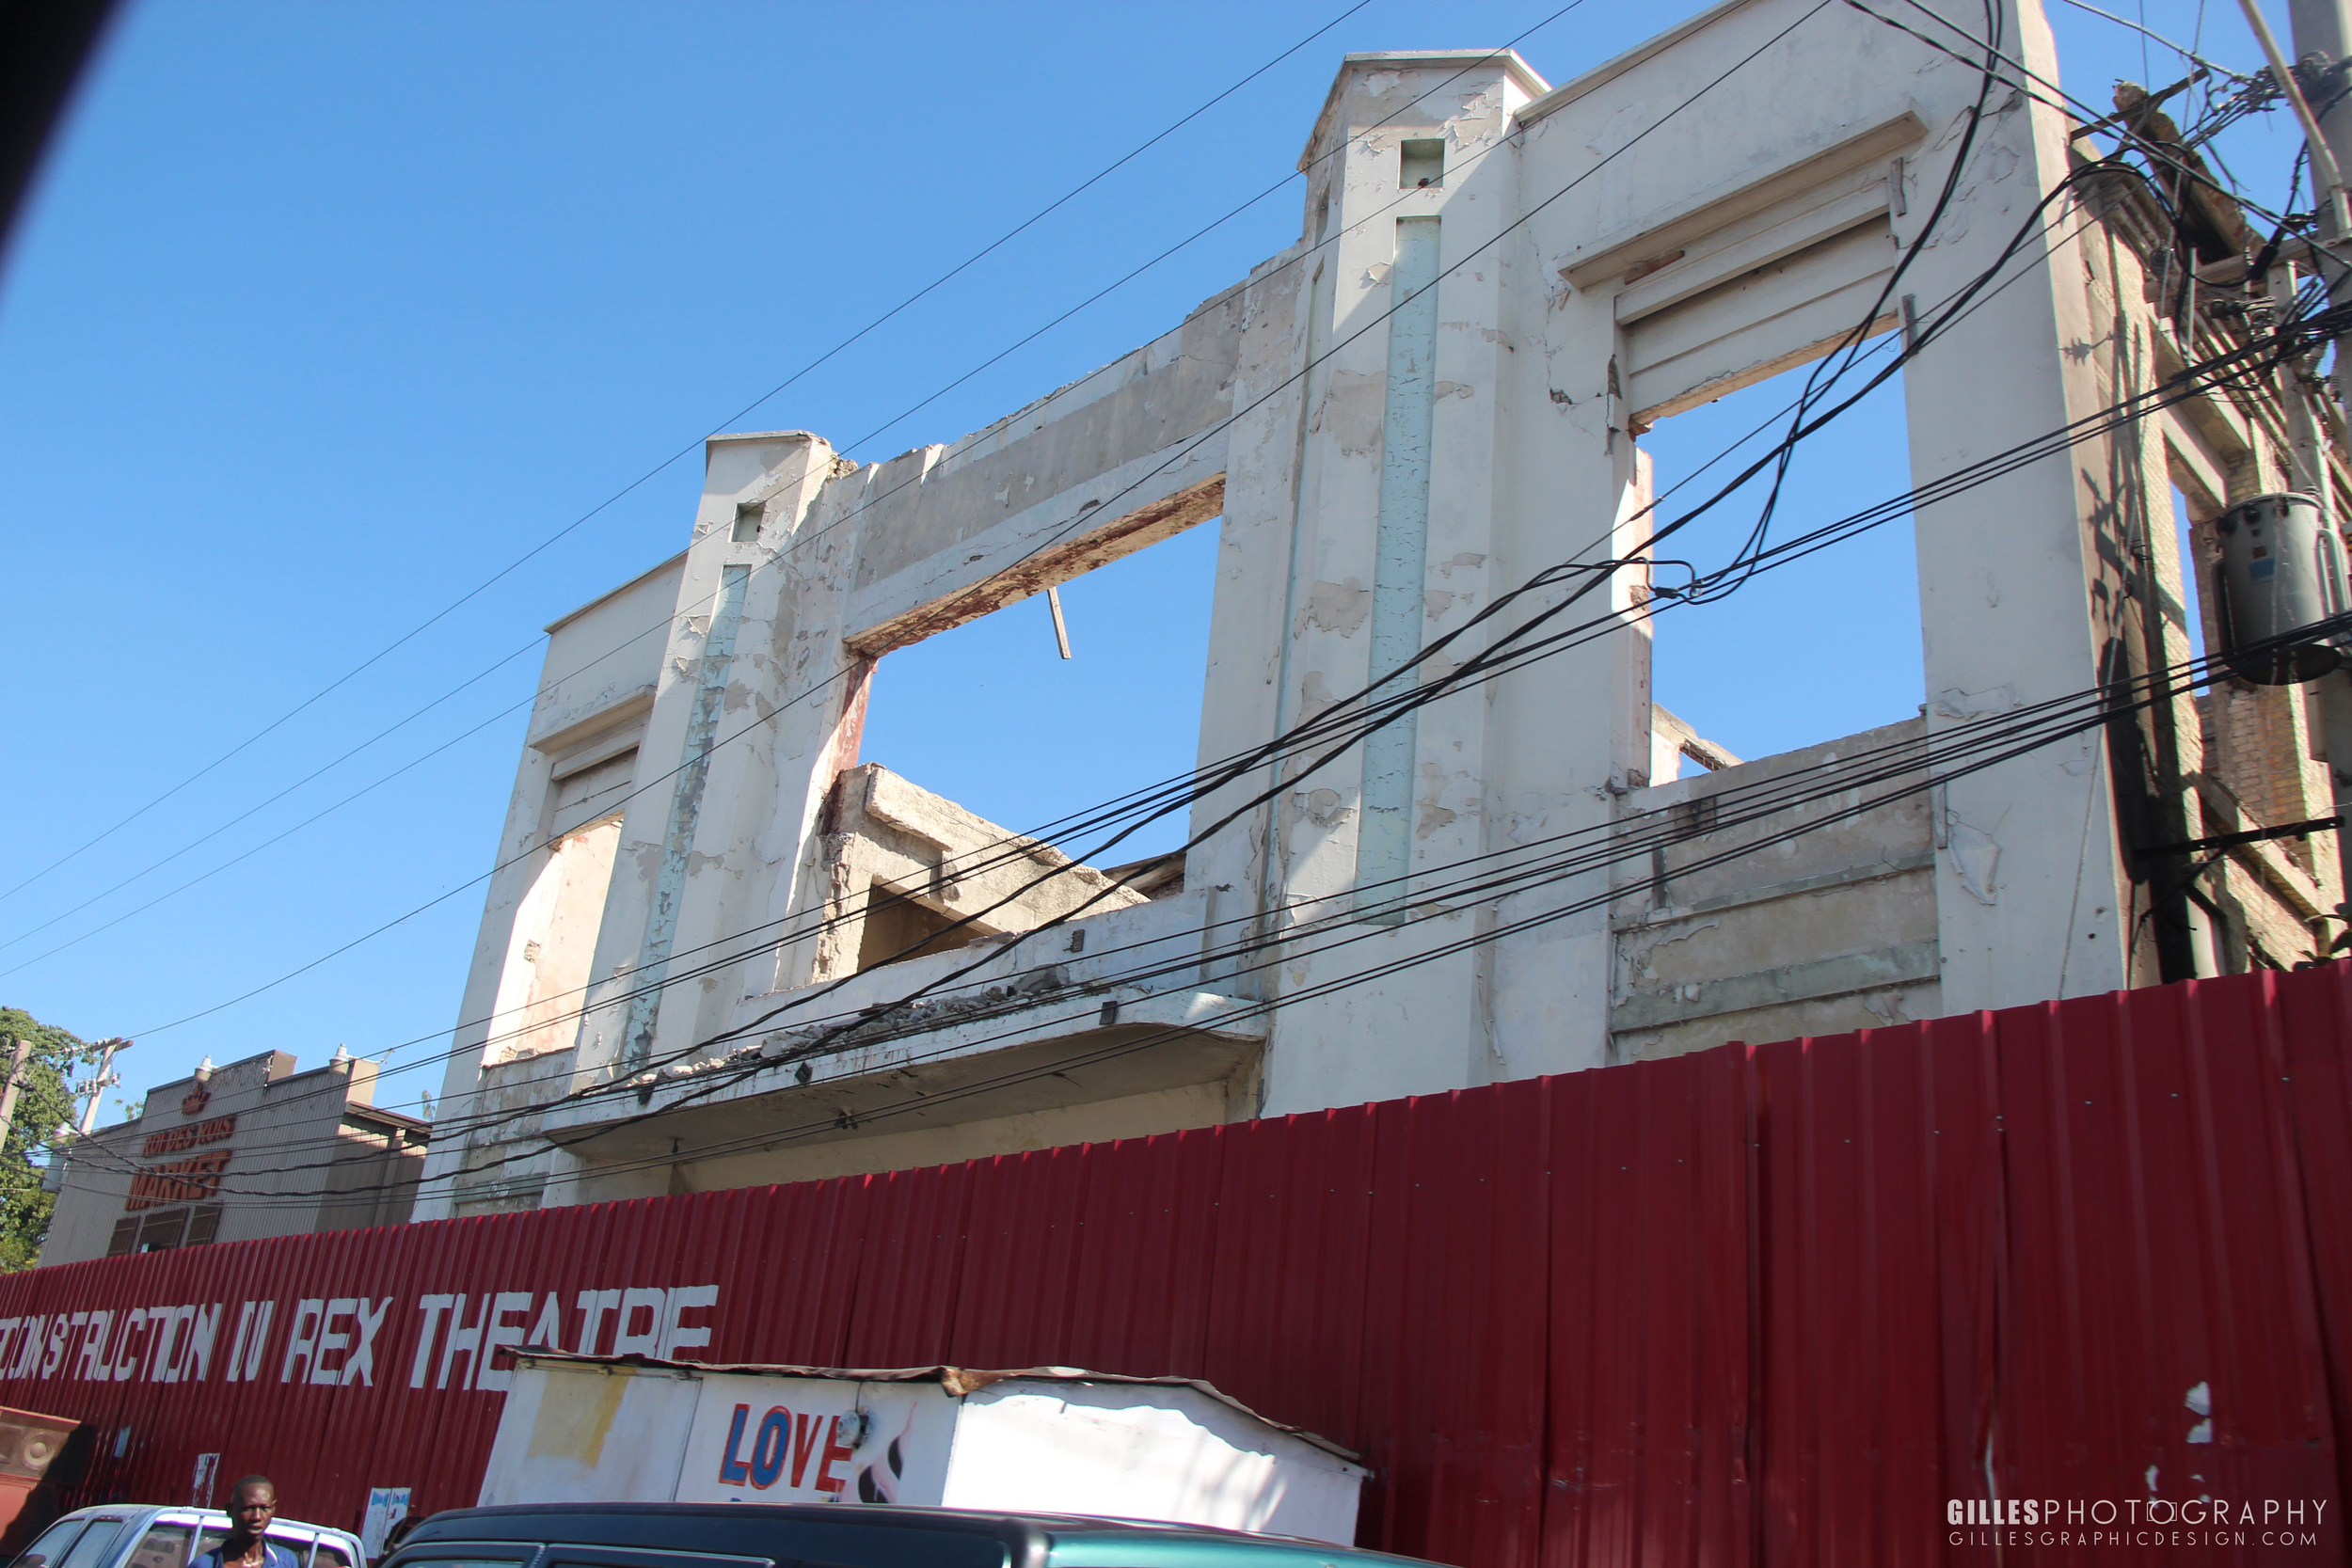 The ruins of the famous Rexe Theatre